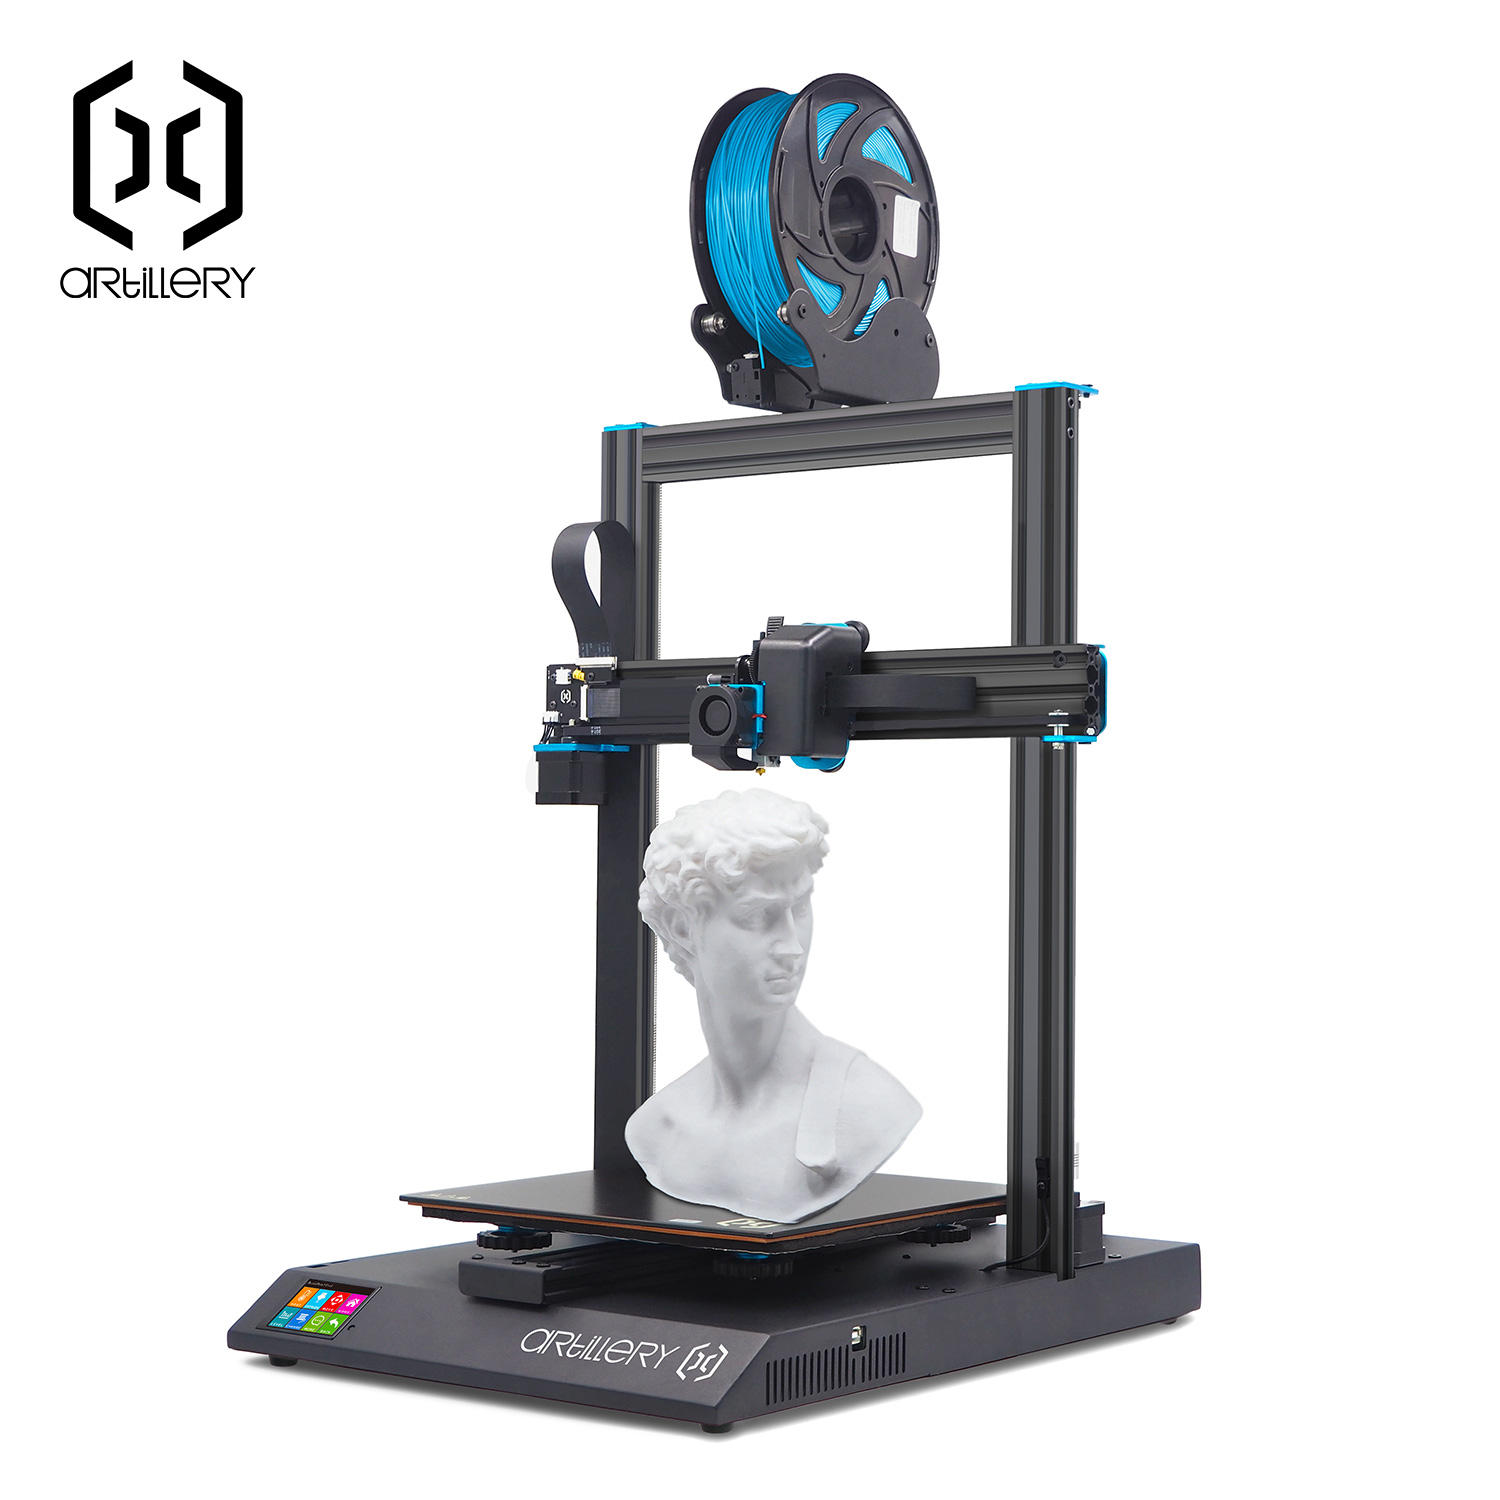 Artillery Sidewinder X1 3D Printer Direct Drive Extruder Large Build Size 300*300*400MM 3d printers machines